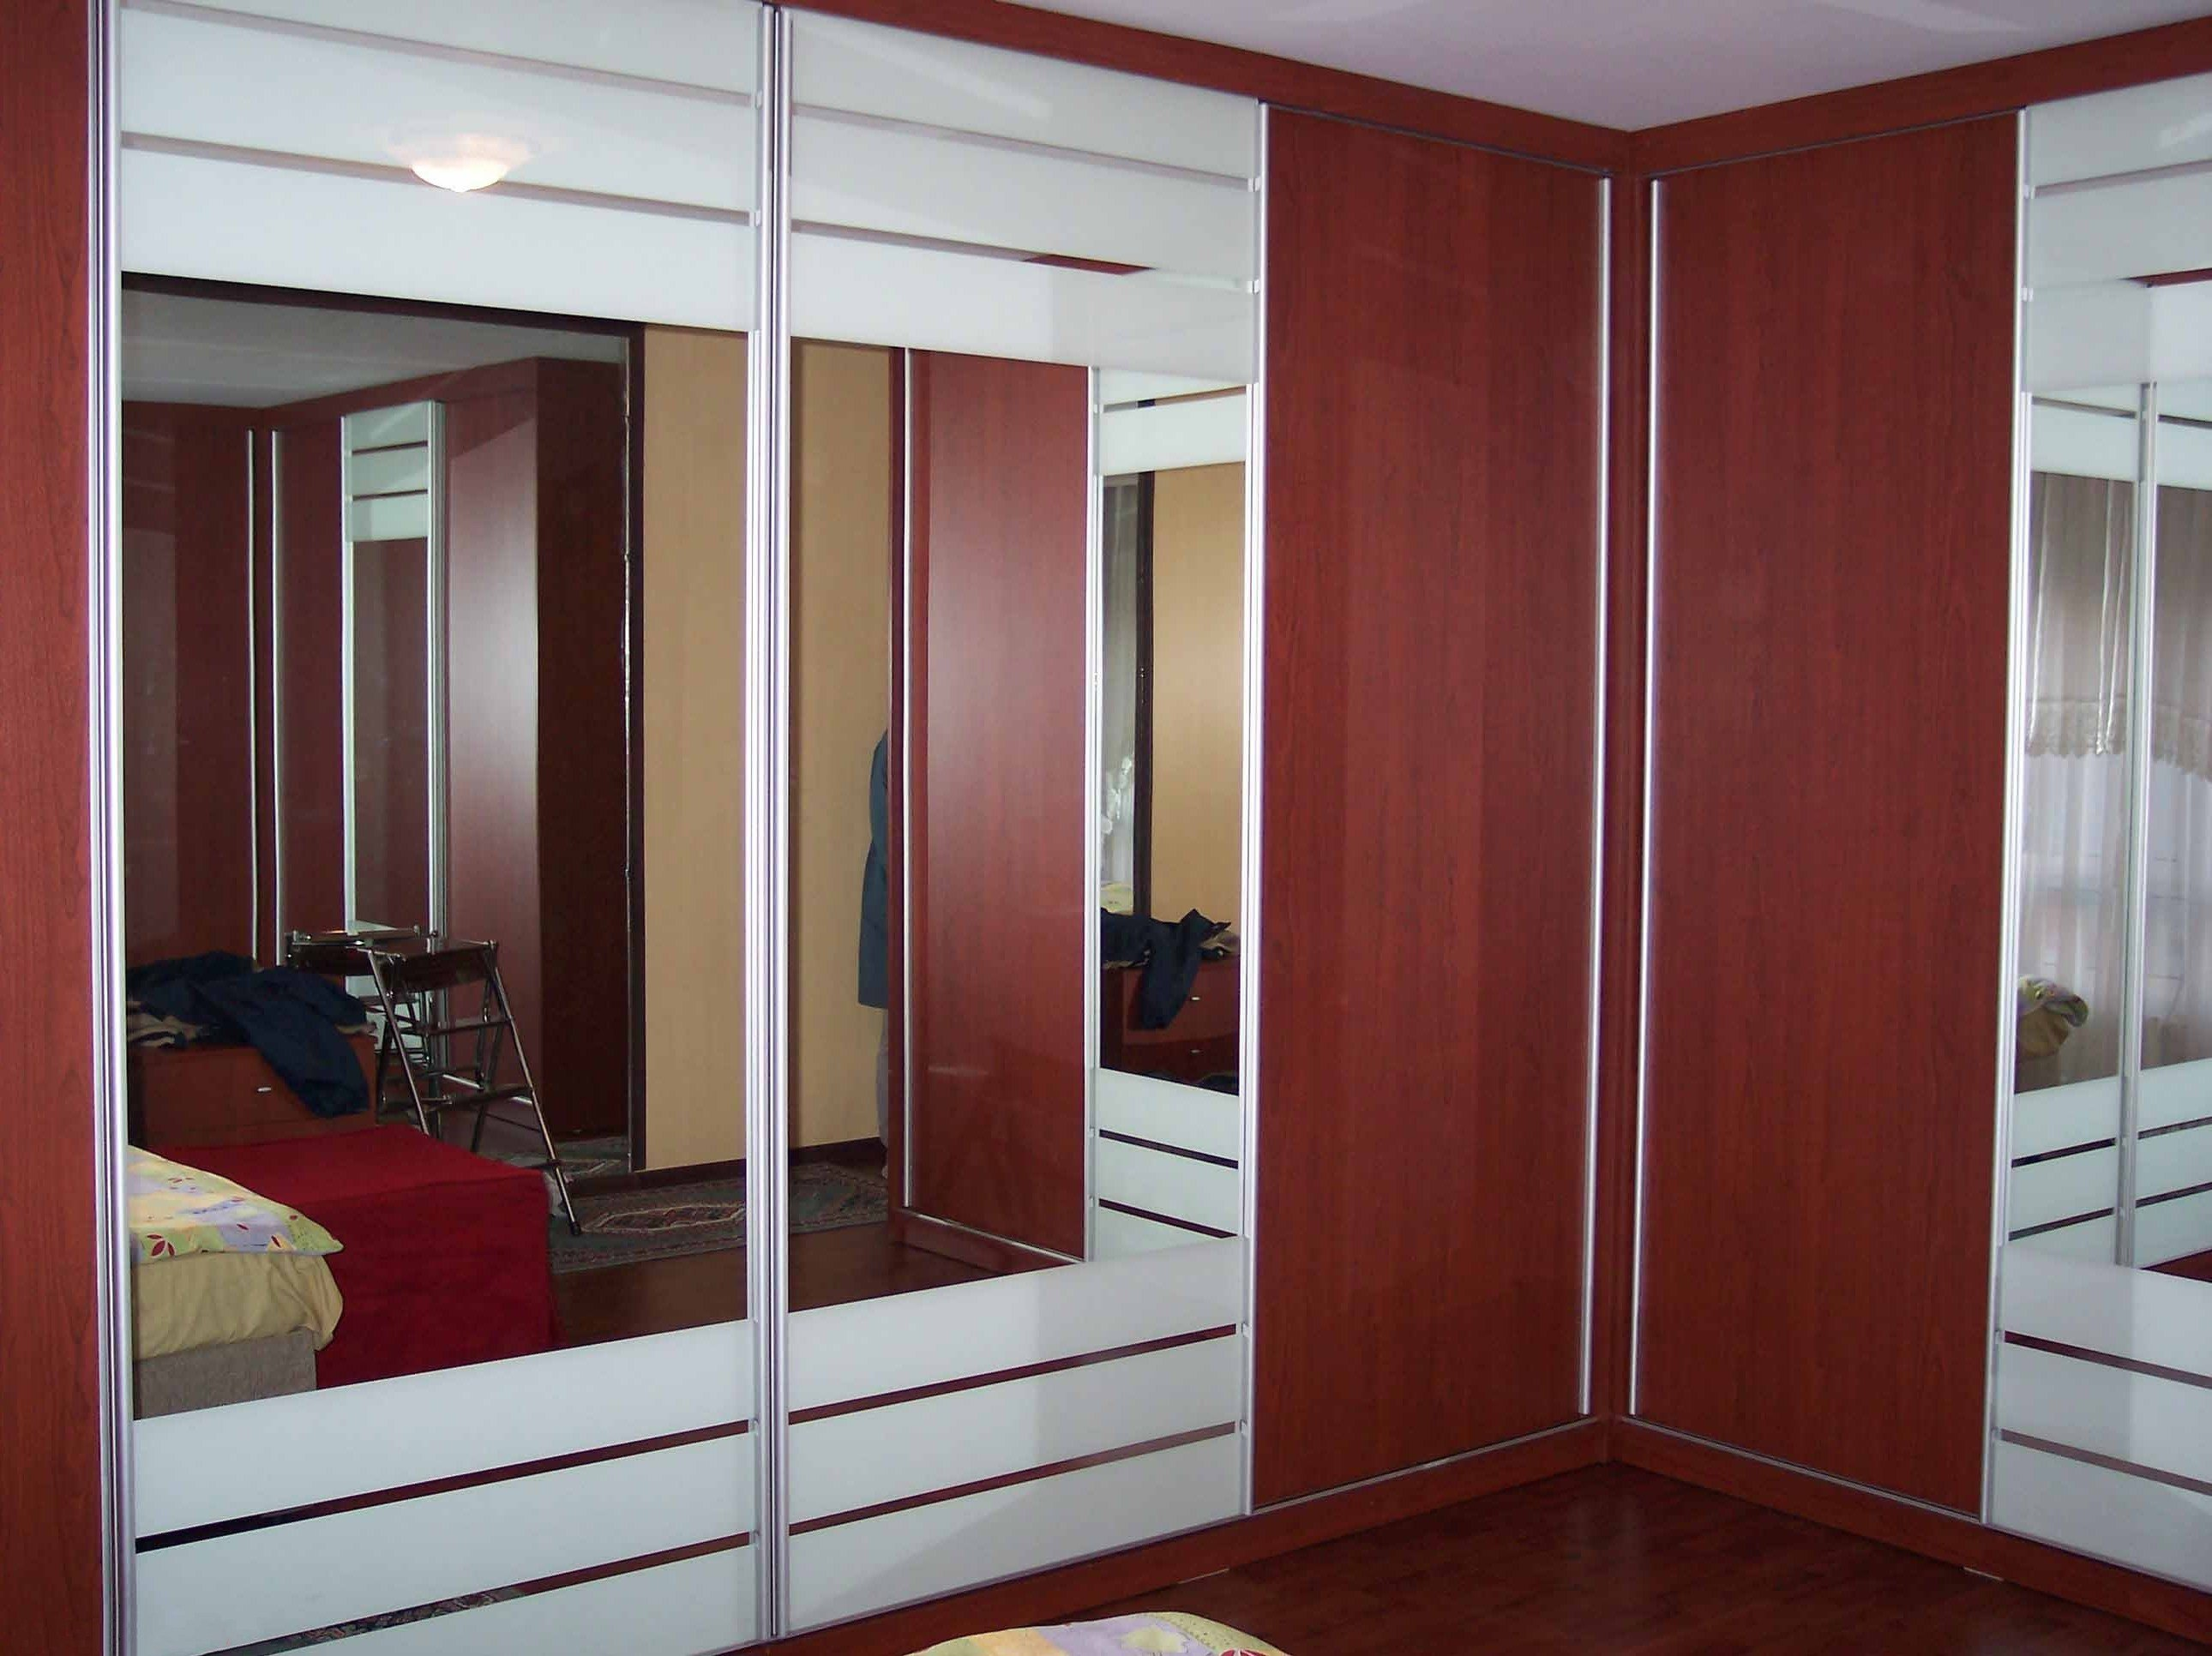 Best 15 Modern Bedroom Wardrobe Design Ideas 16967 Bedroom Ideas With Pictures